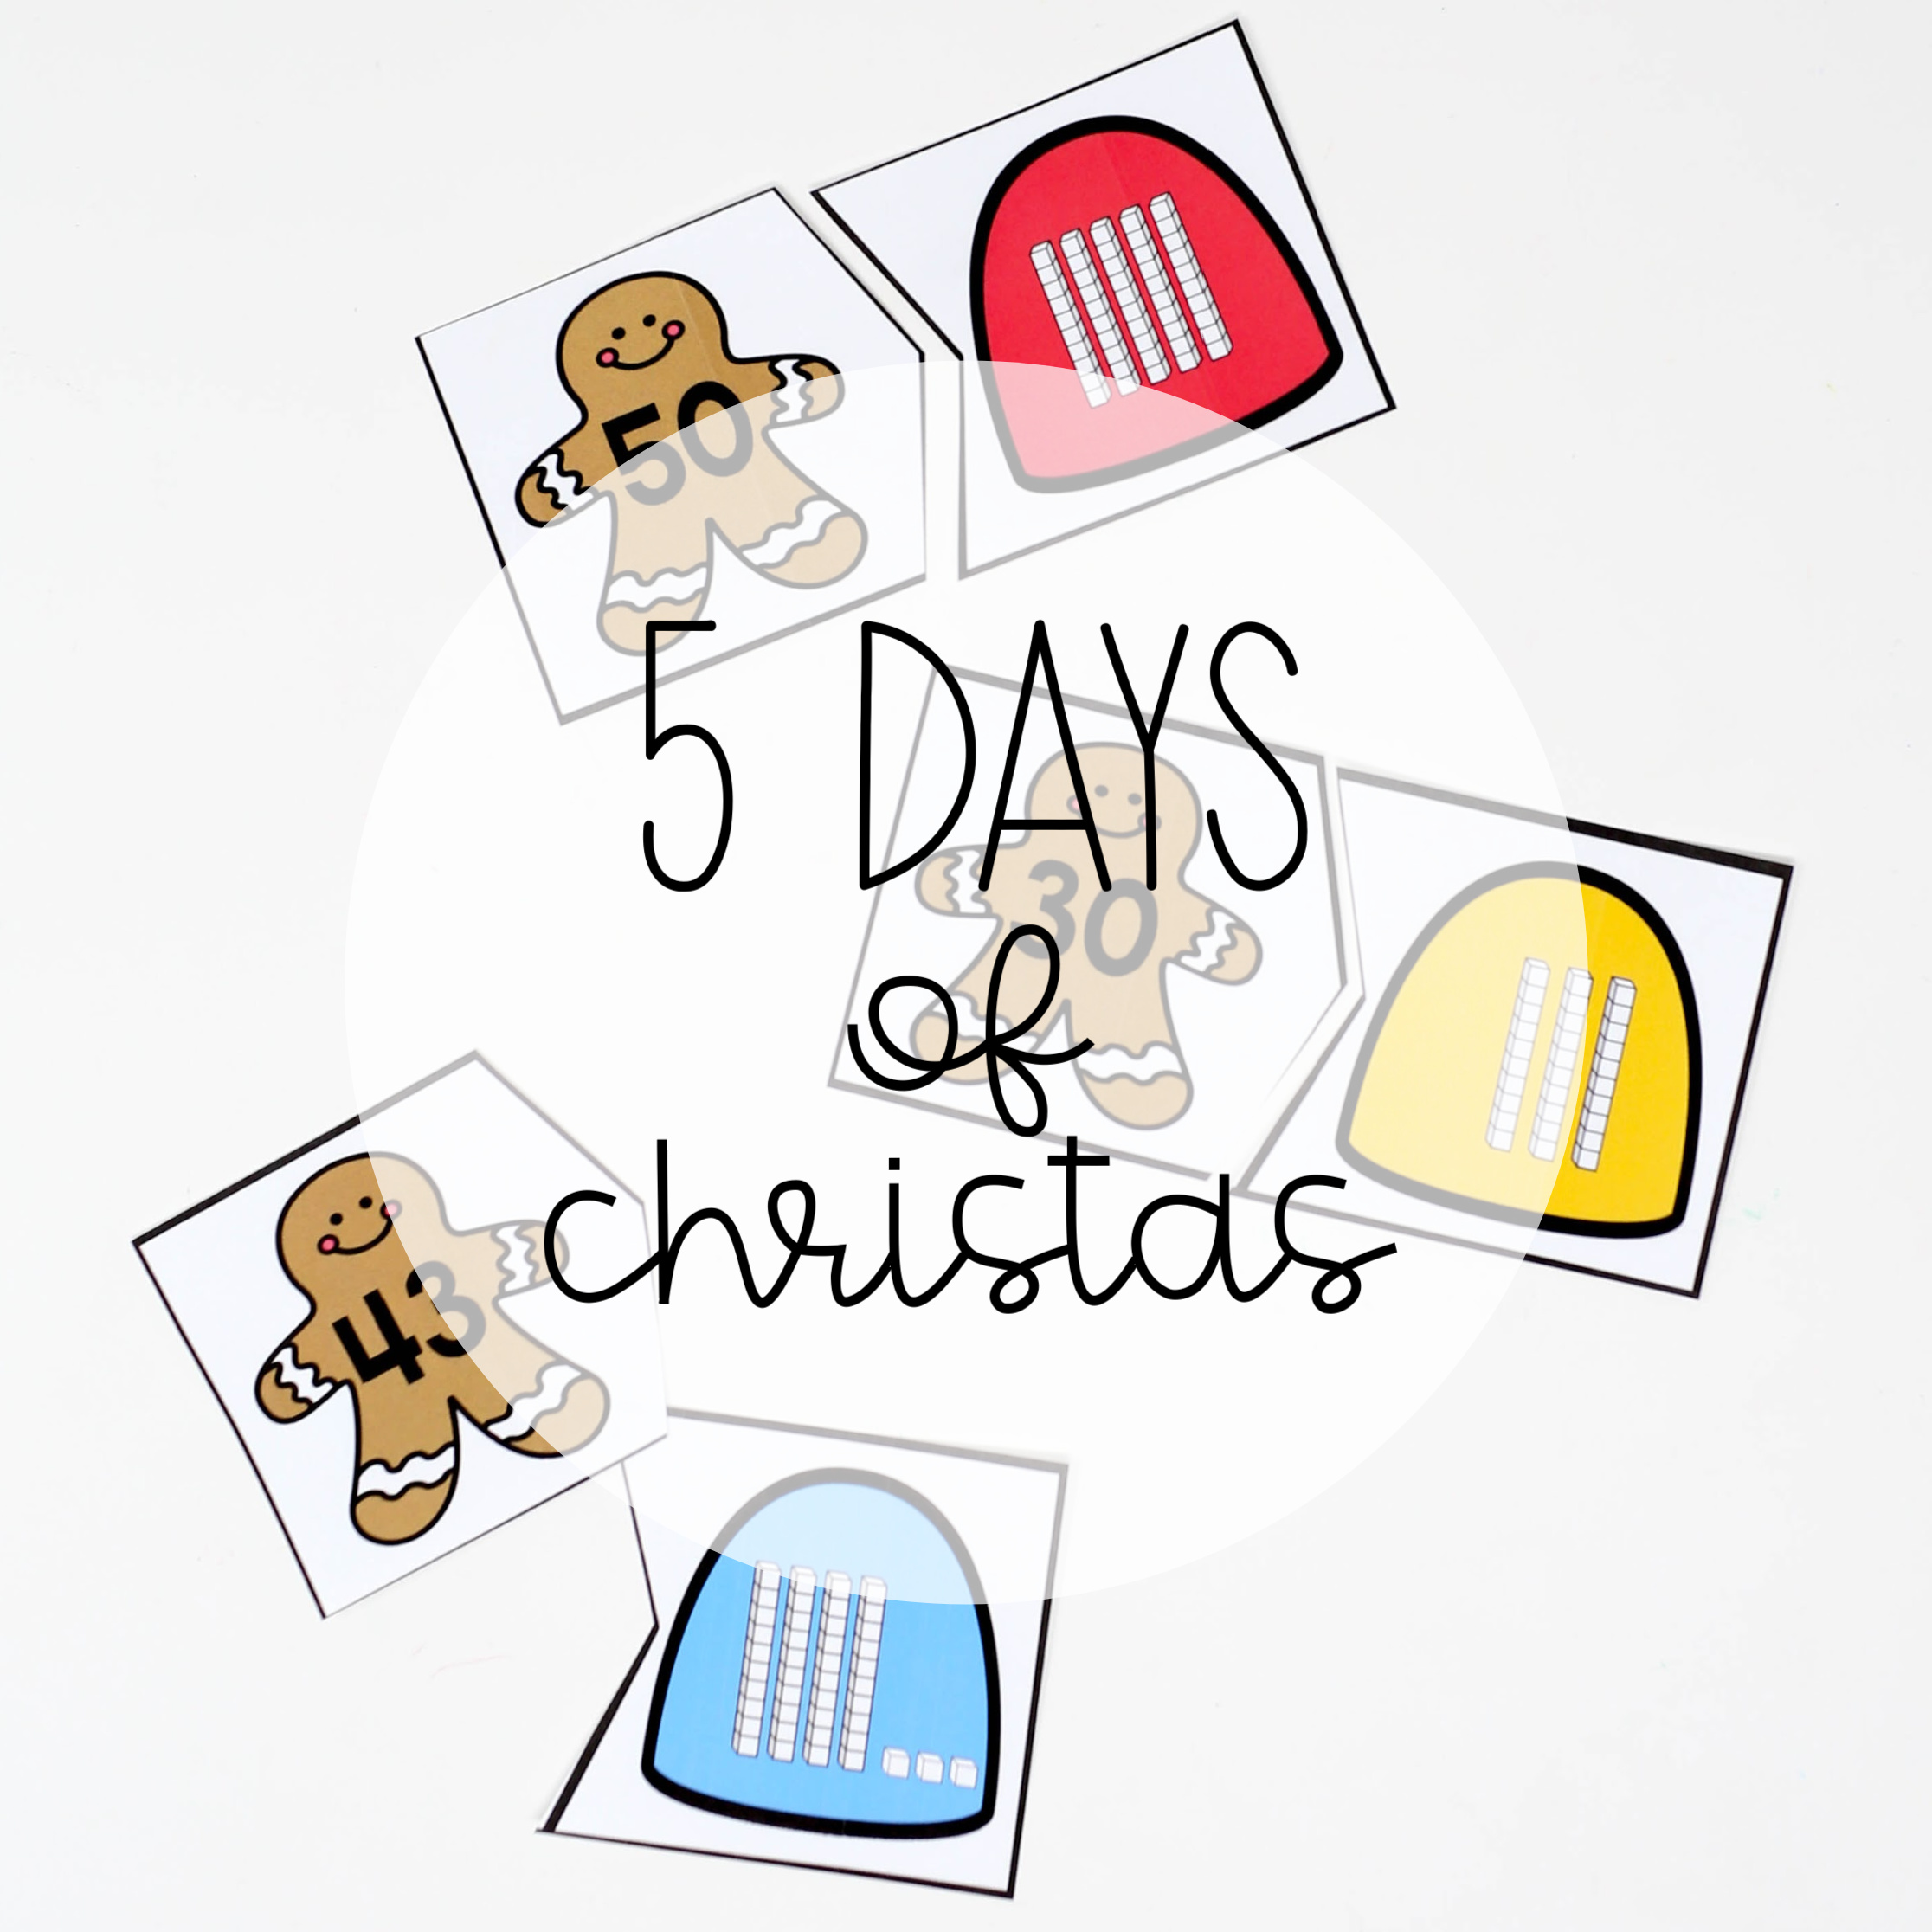 5 Days of Christmas